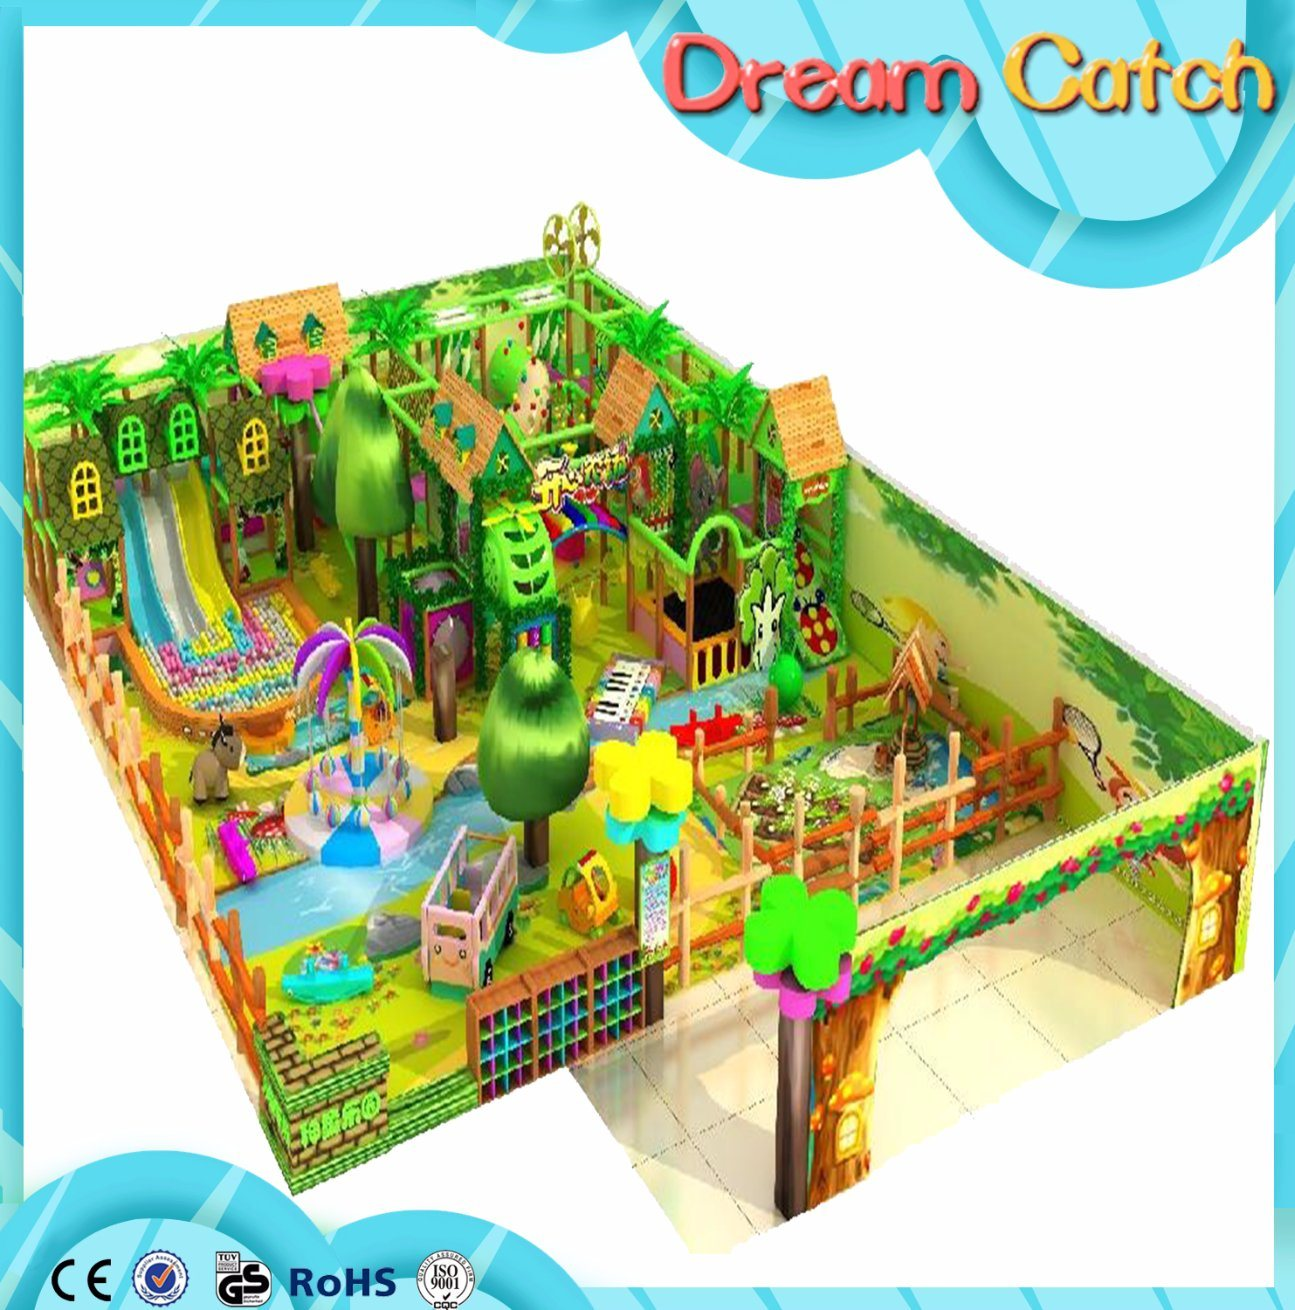 Rocket Series Kids Indoor Playground Manufacturer in Guangzhou